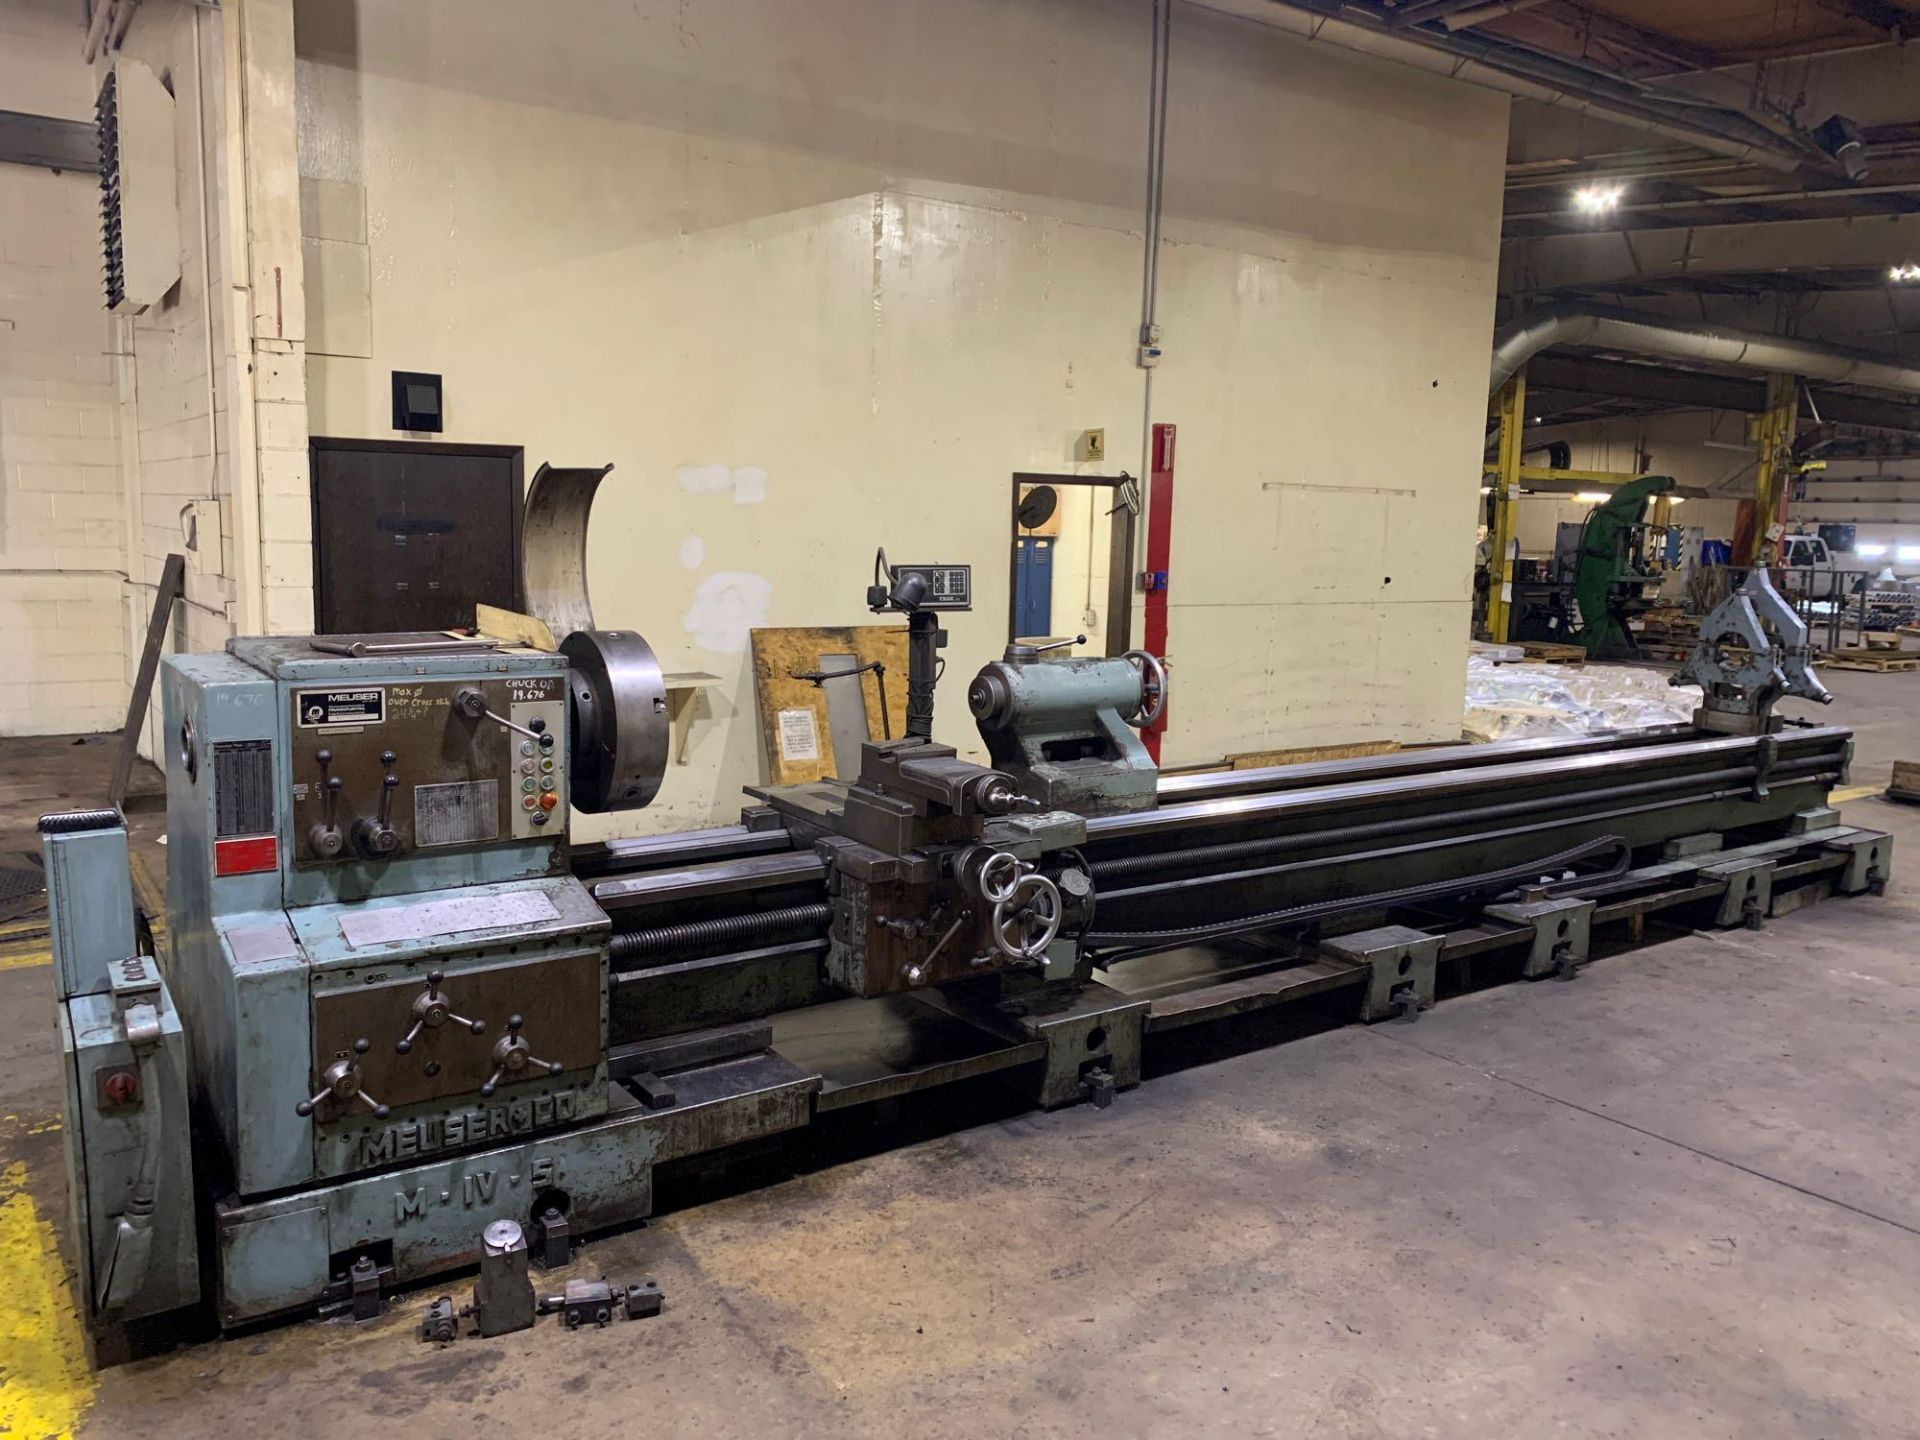 """Meuser Heavy Duty Gap Bed Engine Lathe Model: M IV S Serial Number: 45377 Rated Capacity:32""""/45"""" x - Image 2 of 35"""